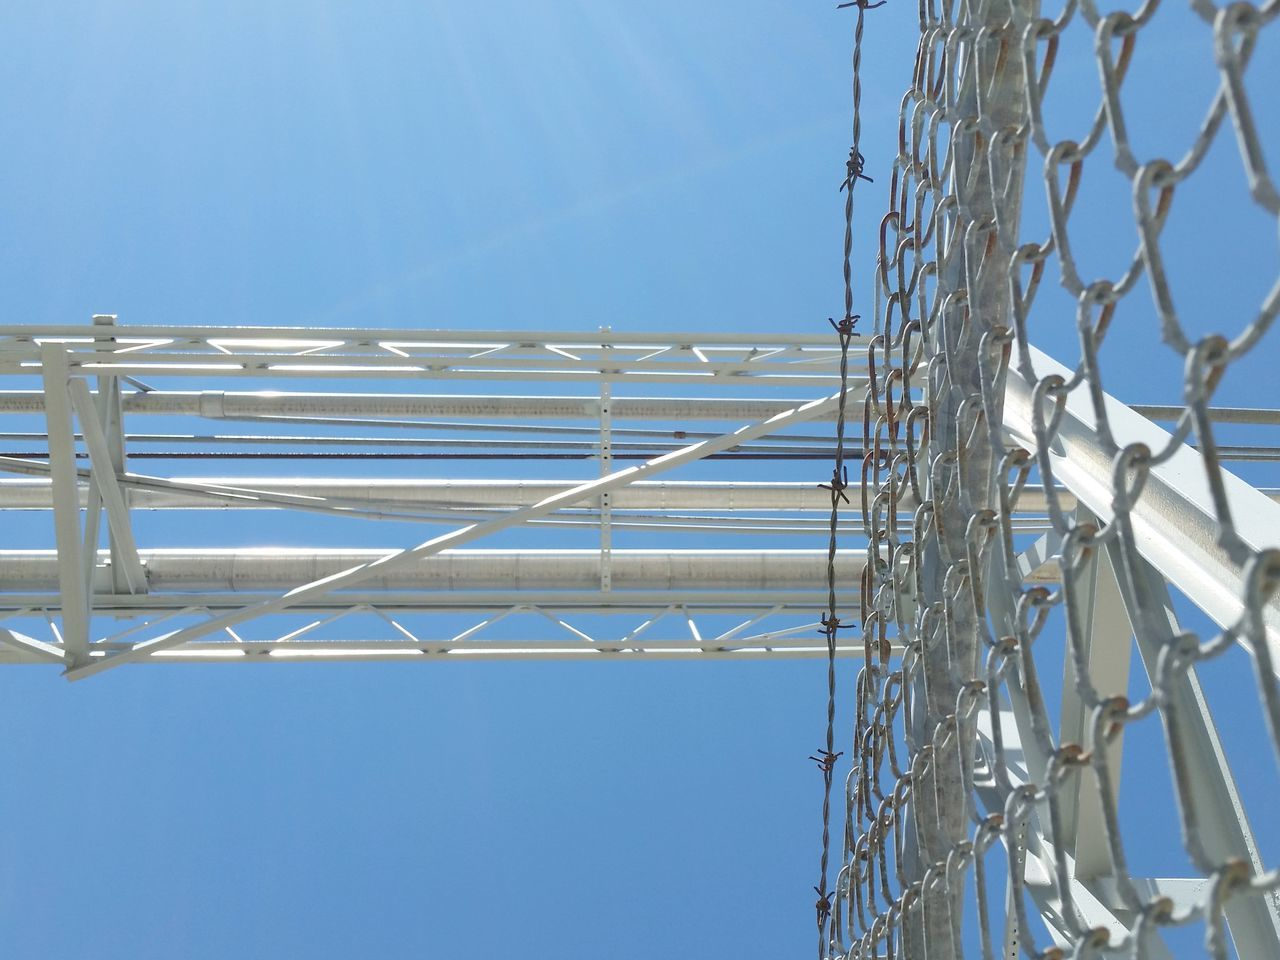 May theme Looking Up Low Angle View Directly Overhead Rails Fence Metal Blue Day Sky Electricity  Clear Sky No People Outdoors Technology Close-up Blue Sky The Architect - 2017 EyeEm Awards